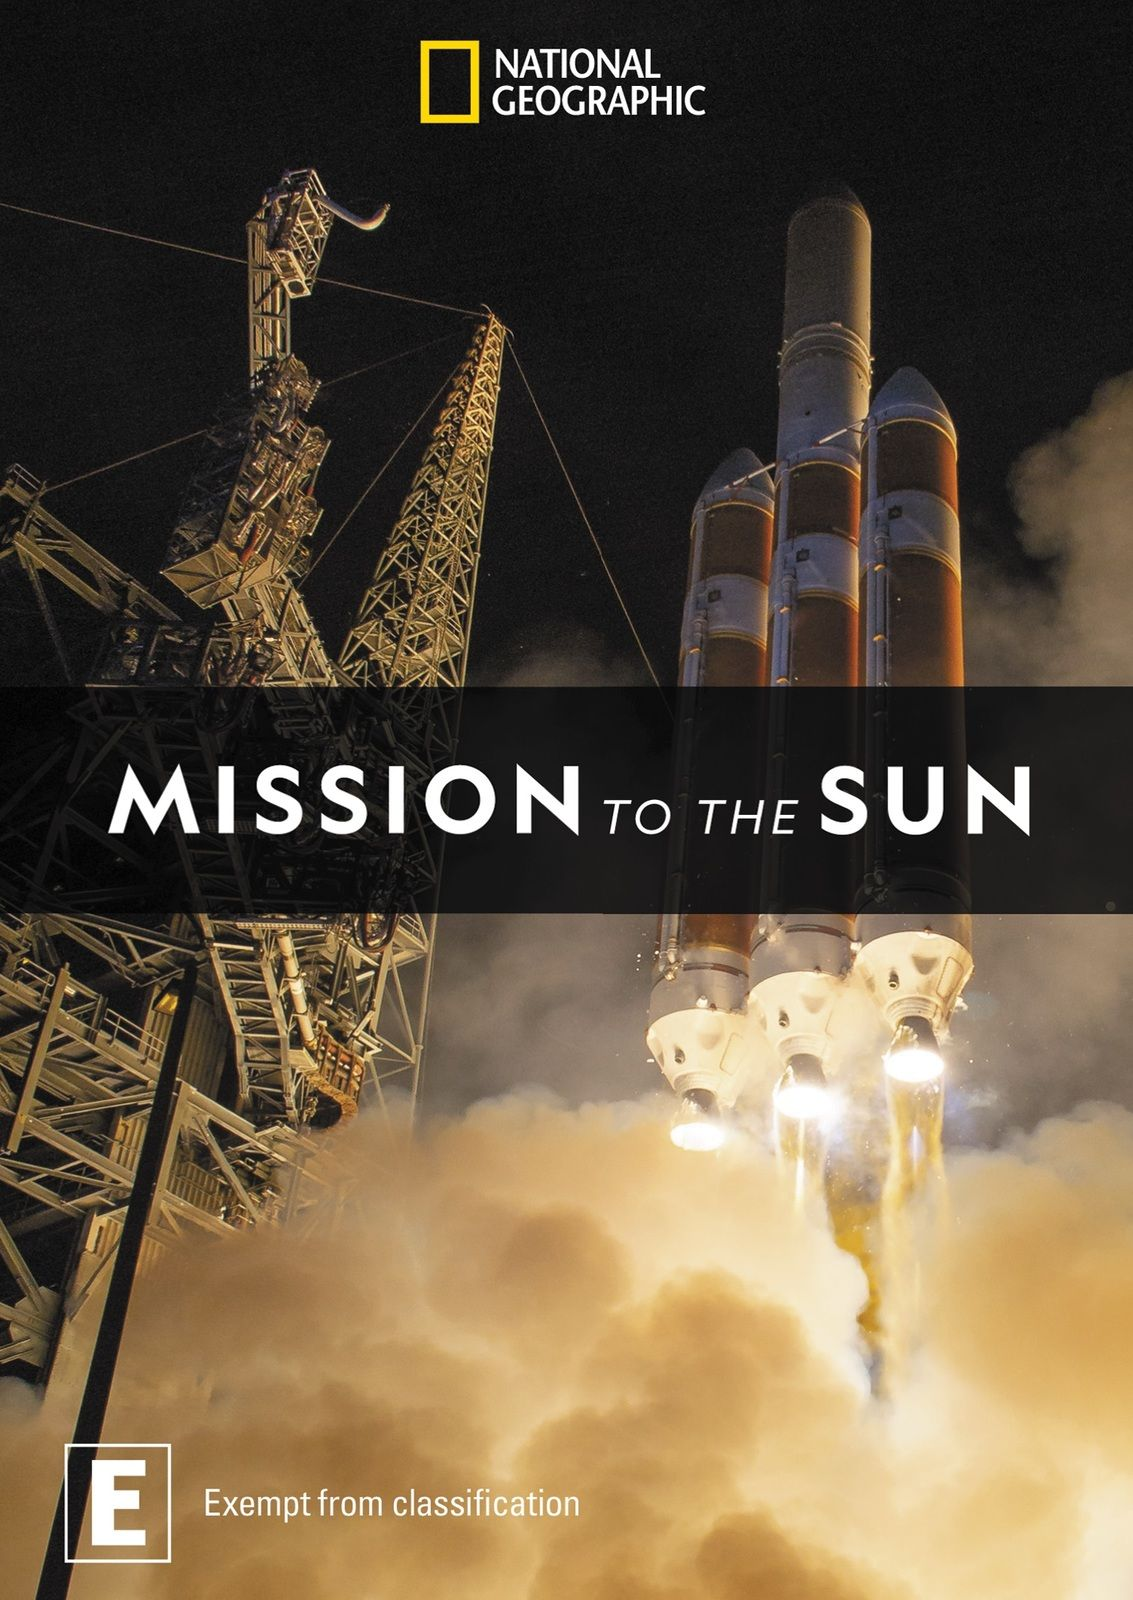 The next space frontier… the sunAlmost 100 million miles from Earth, a tiny spacecraft the size of a smallcar hurtles closer to the sun than any man-made object has ever been, at a speedfaster than any man-made object has ever traveled. The Parker Solar Probe is todefy the almost unimaginable heat and deadly radiation of our nearest star, tostudy the sun closer than any human-made object ever has before.